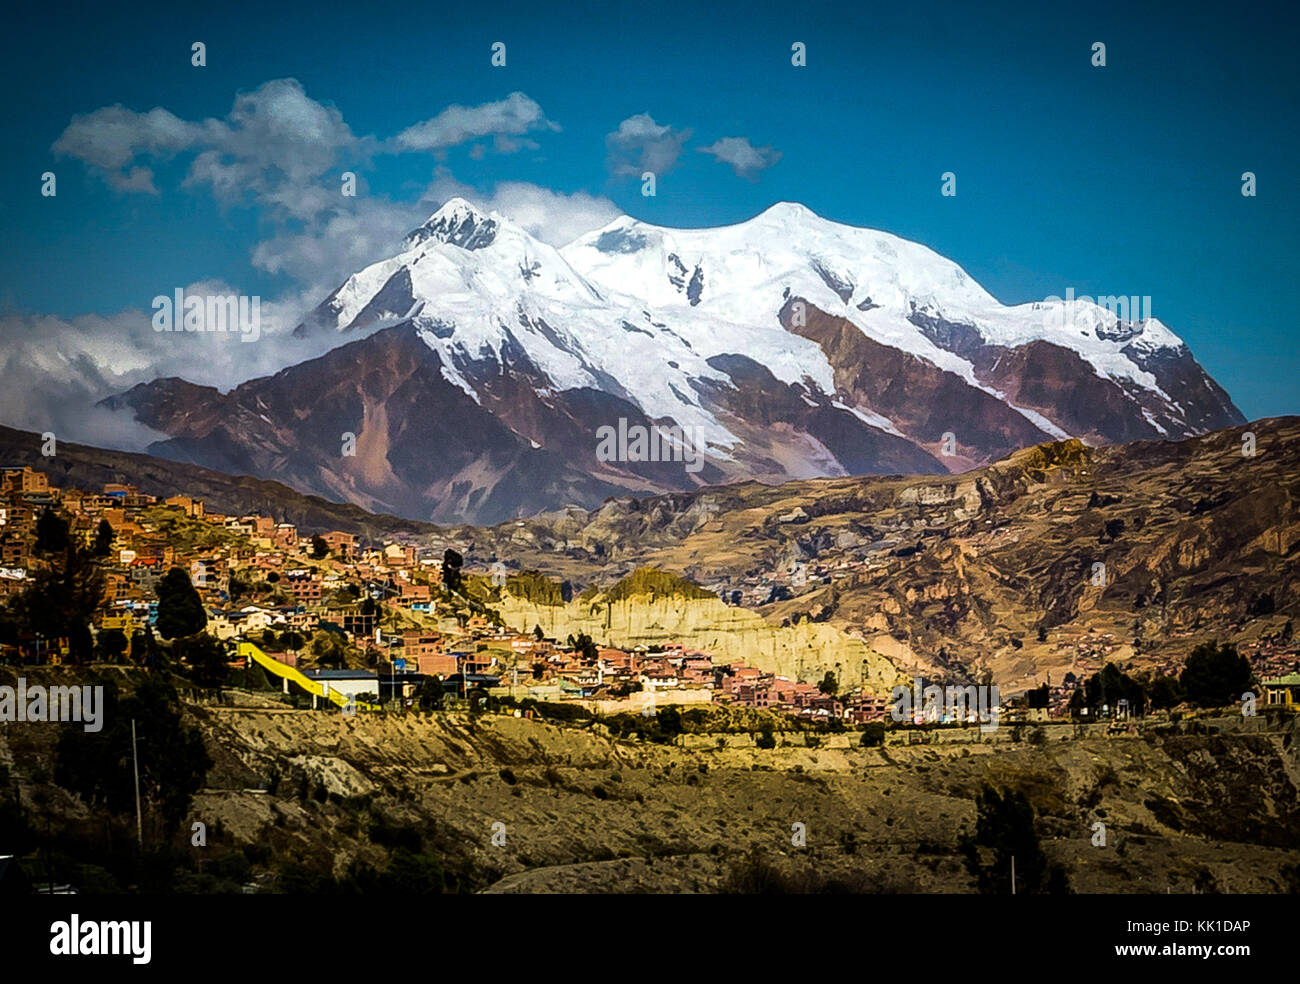 Photo taken in August 2017 in La Paz Bolivia, South America: - Stock Image